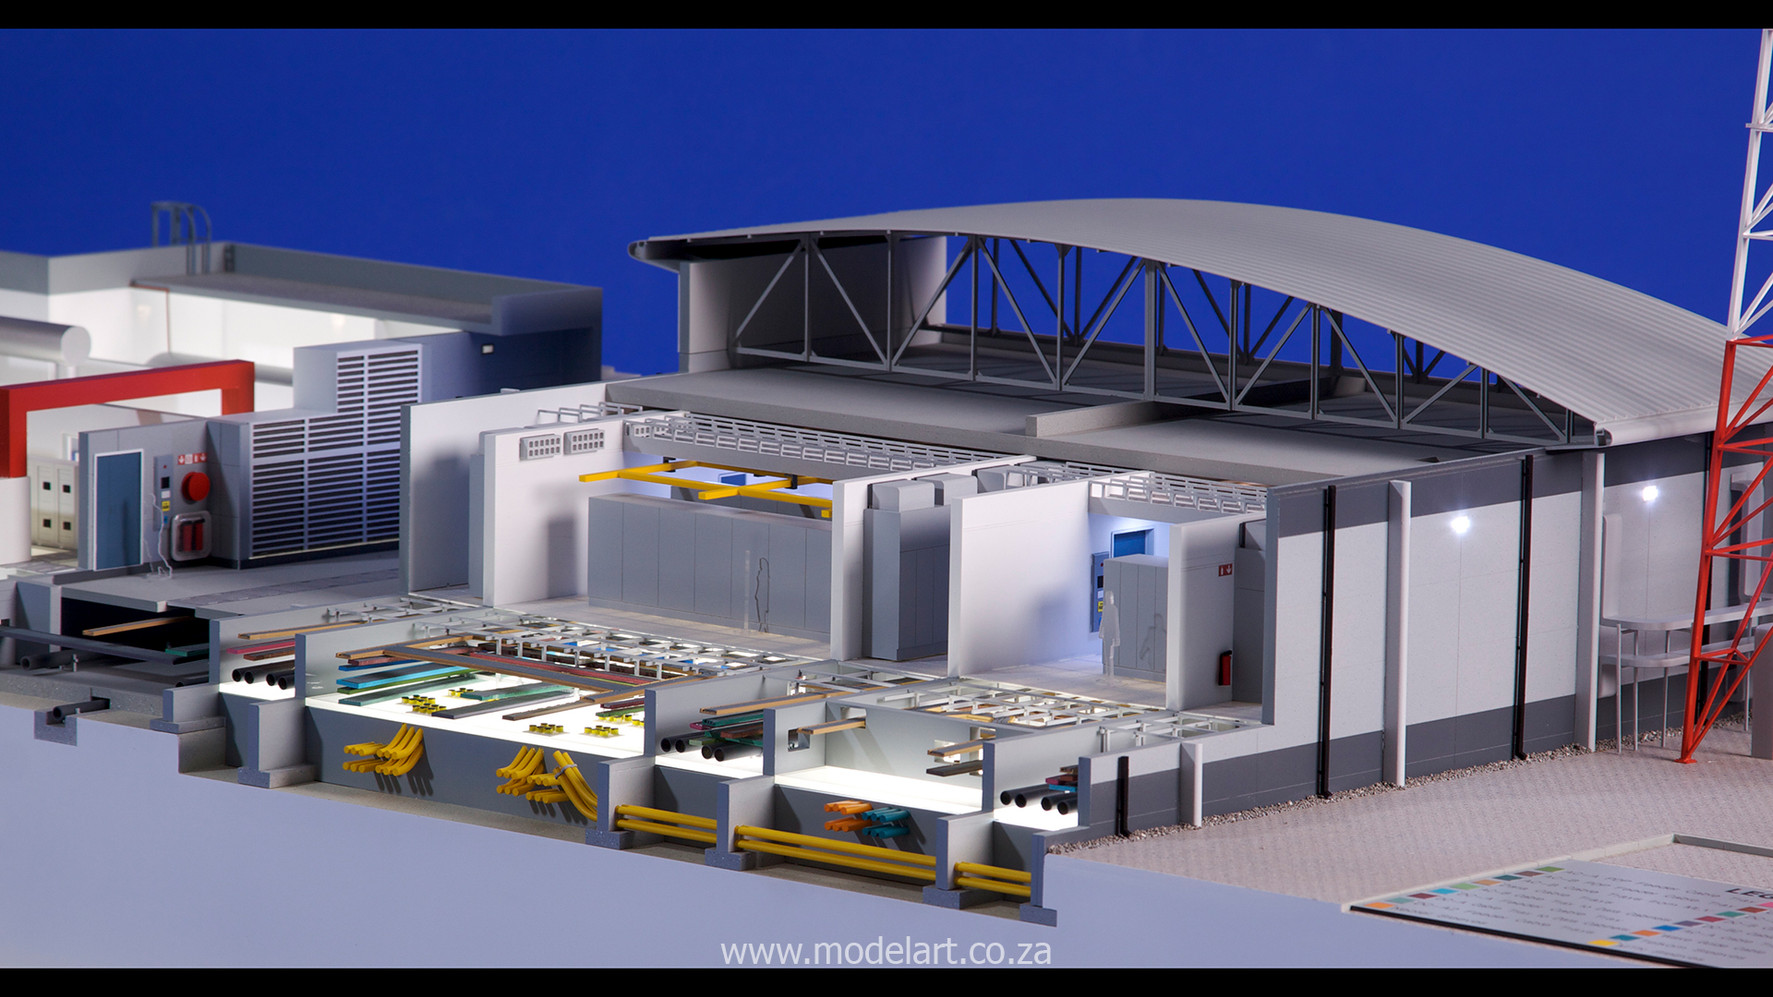 Architectural-Scale-Model-Engineering-MTN Rustenburg-6